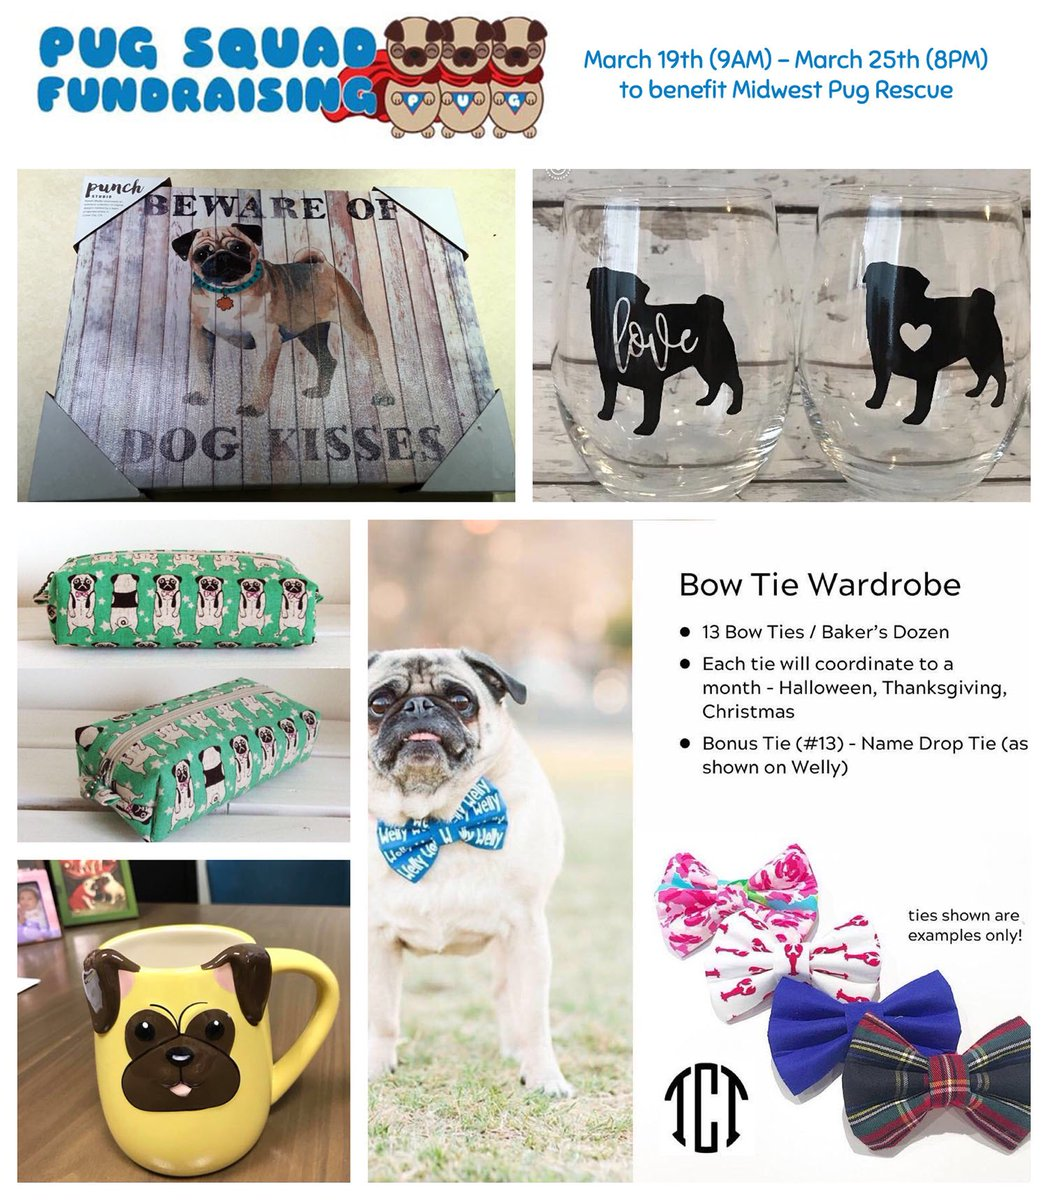 pugsquadauction hashtag on twitter